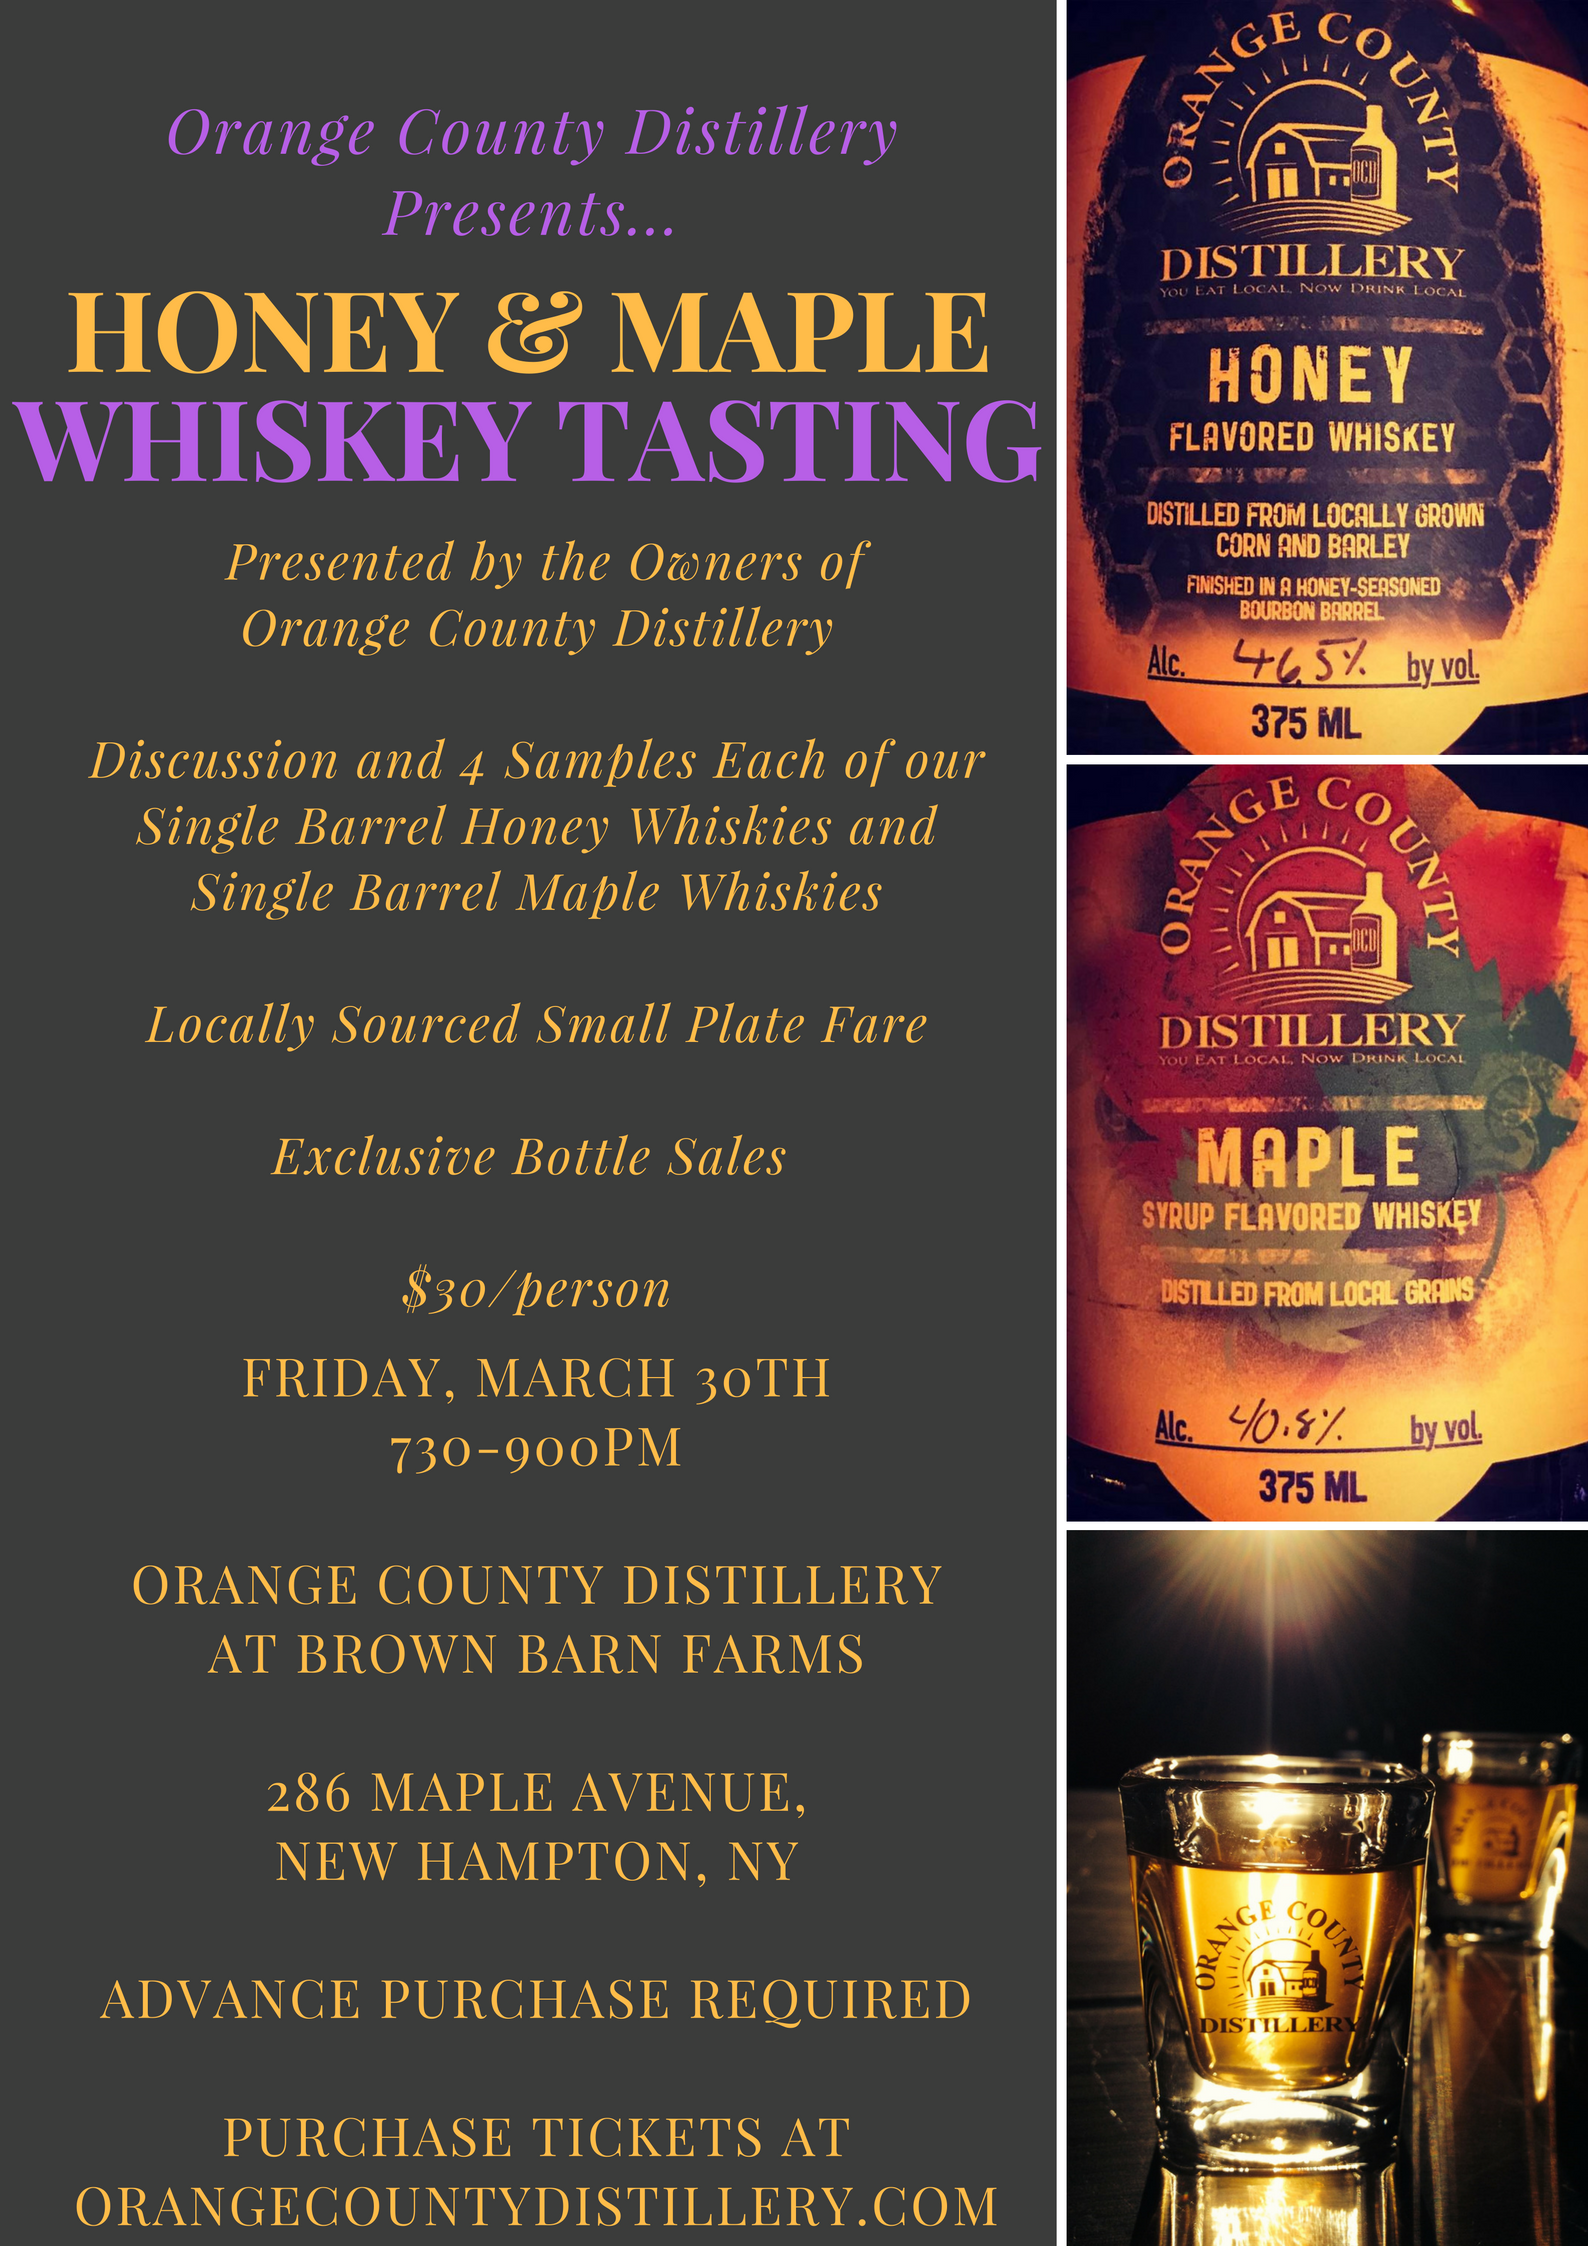 It's back, once again!  The 15th installment of our Whiskey Flight Night!  Join us in a discussion and Q&A session with the owners of Orange County Distillery as we taste four samples each of our single barrel Honey Whiskeys and single barrel Maple Whiskeys.  We'll also have plenty of locally sourced food, including smoked meats from Quaker Creek, various cheeses from 5 Spoke Creamery and Edgwick Farm and our specially made Honey & Maple Fudge.    Bottles of each batch sampled this night will also be on sale for this night only.    $30 per person.